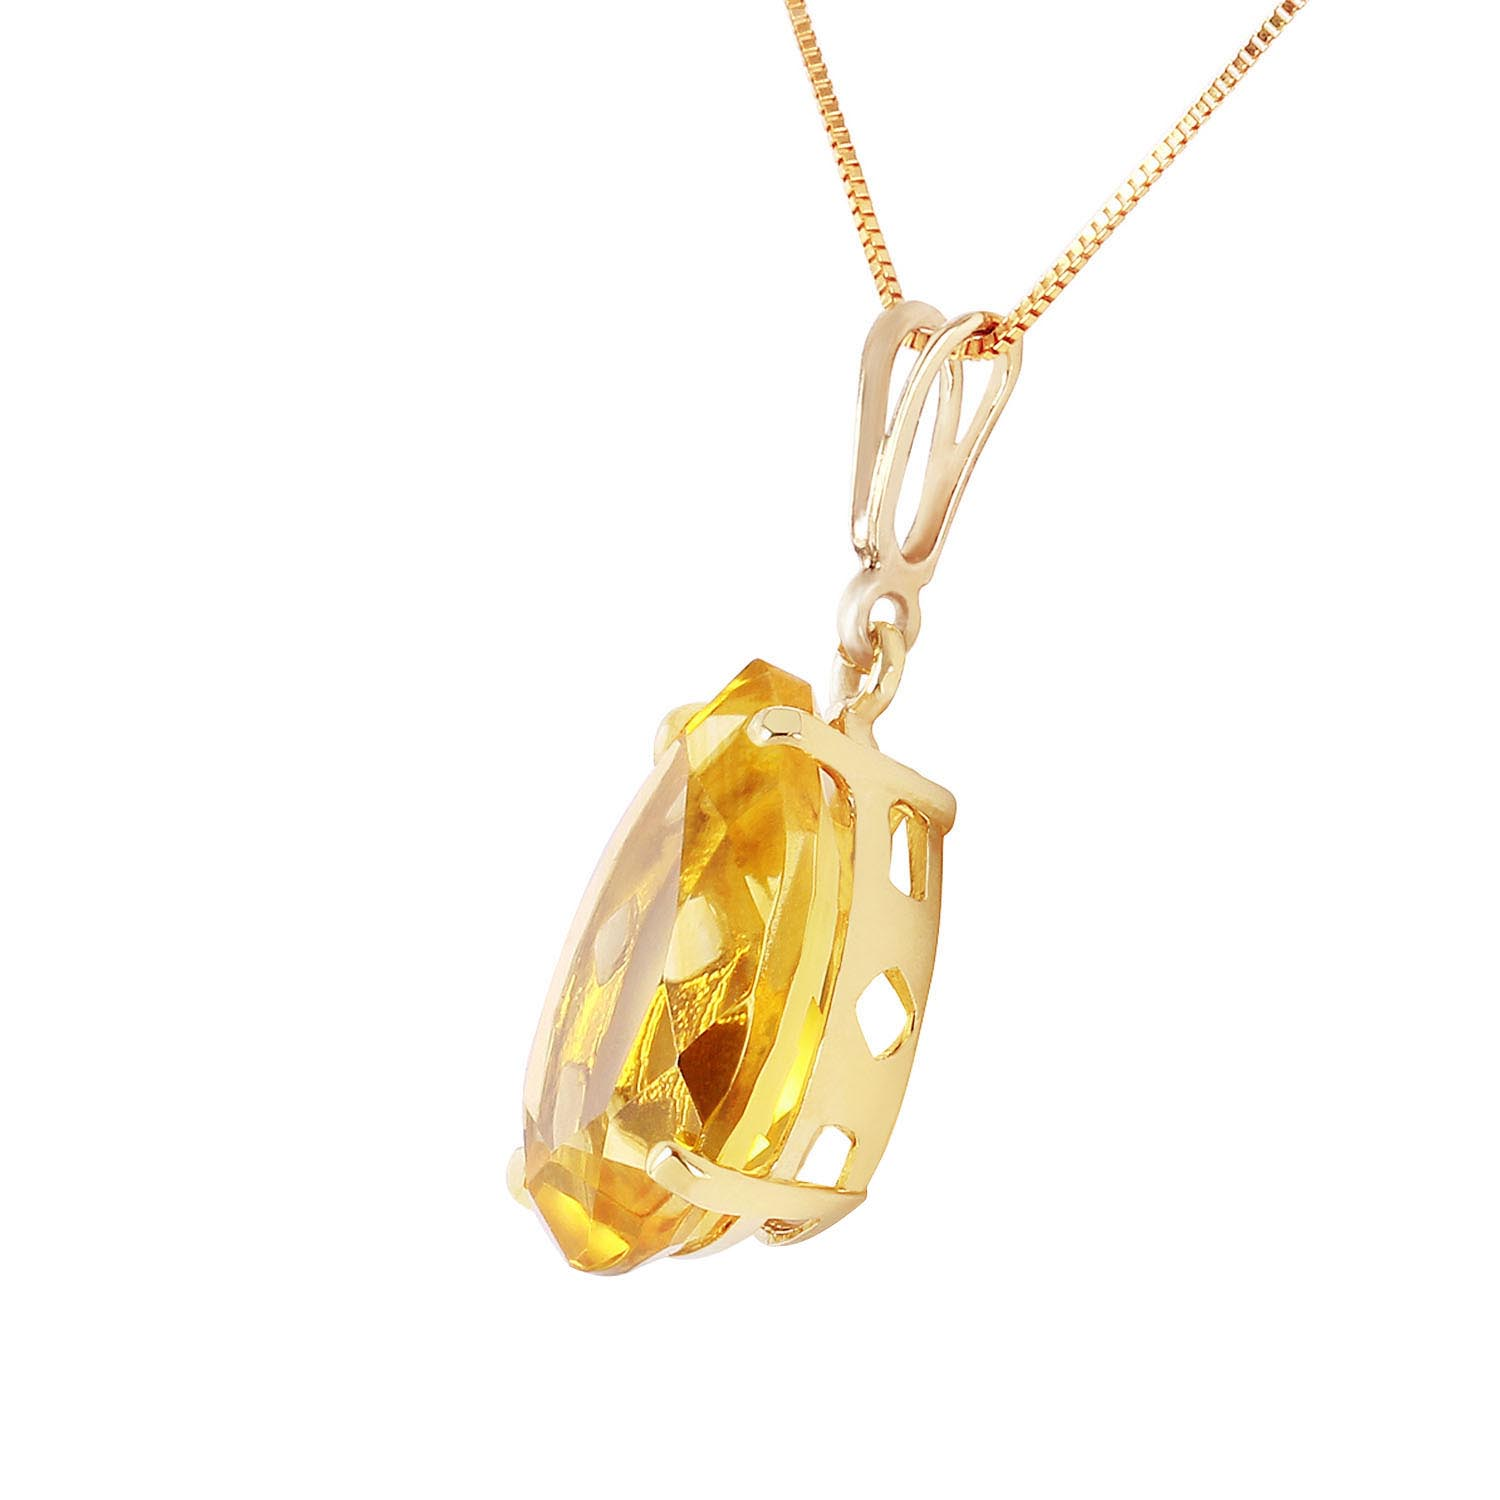 Pear Cut Citrine Pendant Necklace 5.0ct in 9ct Gold